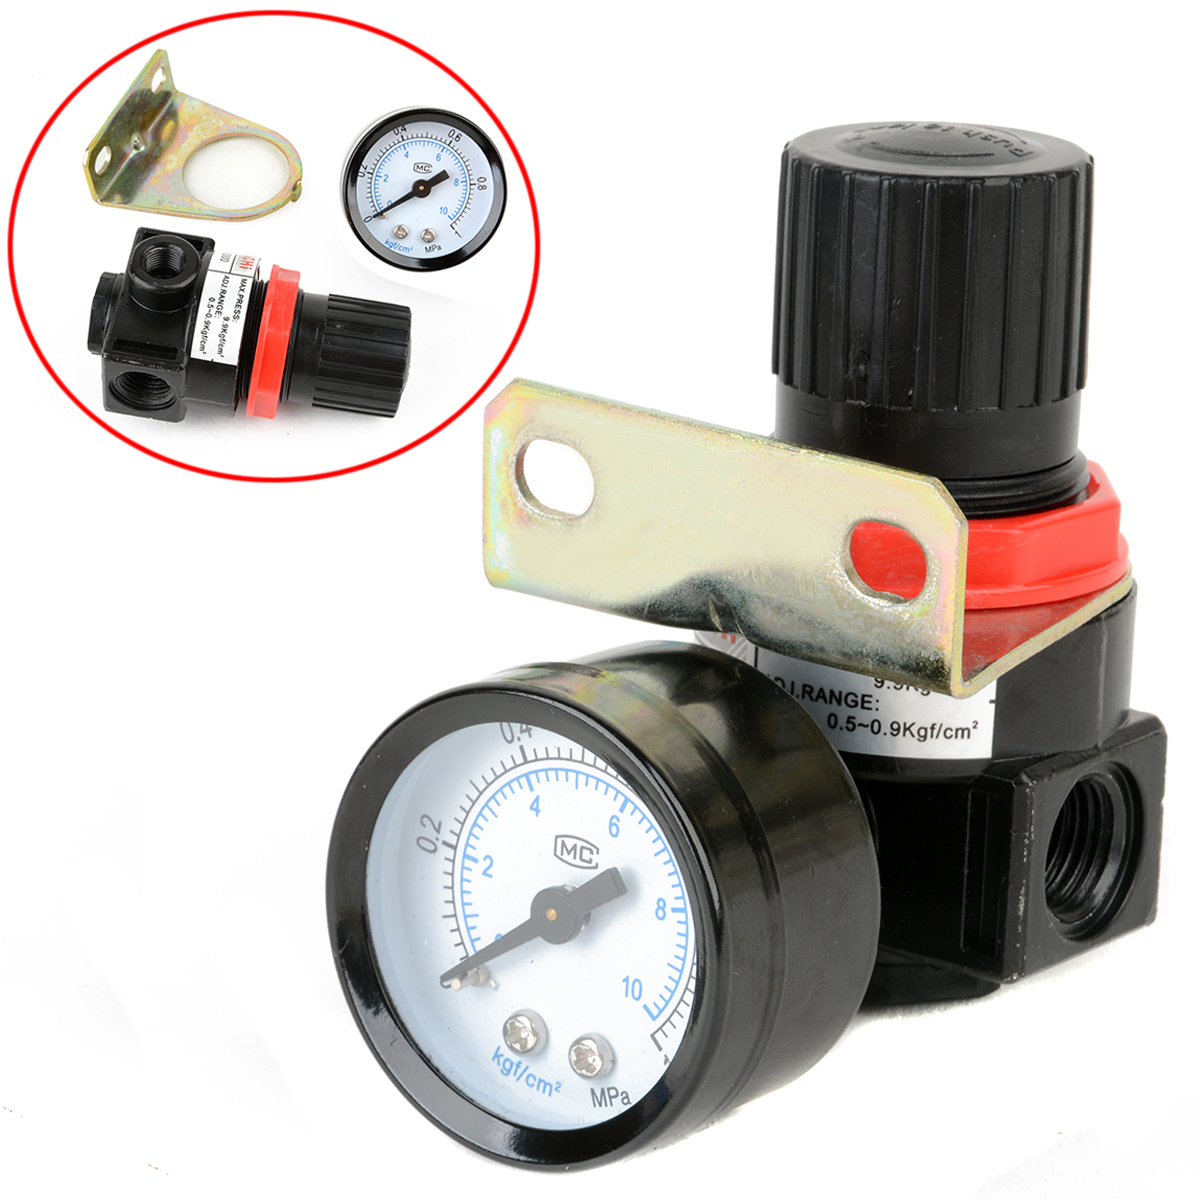 1pc Air Control Pressure Gauge Compressor Relief Regulator Regulating Valve 75*40*40mm Mayitr Pneumatic Parts 120psi air compressor pressure valve switch manifold relief regulator gauges